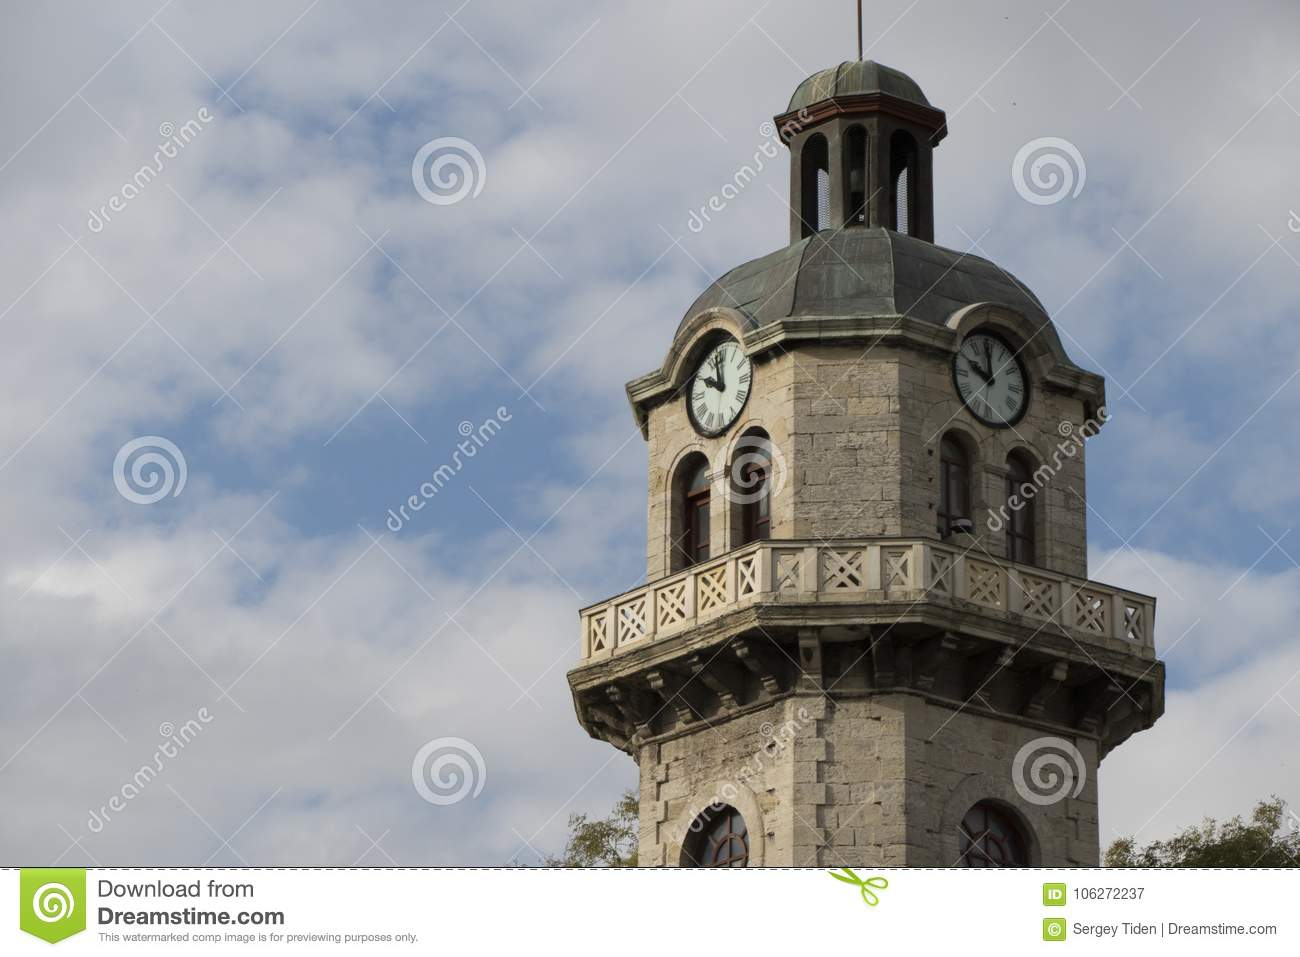 Old city clock tower on a cloudy sky background